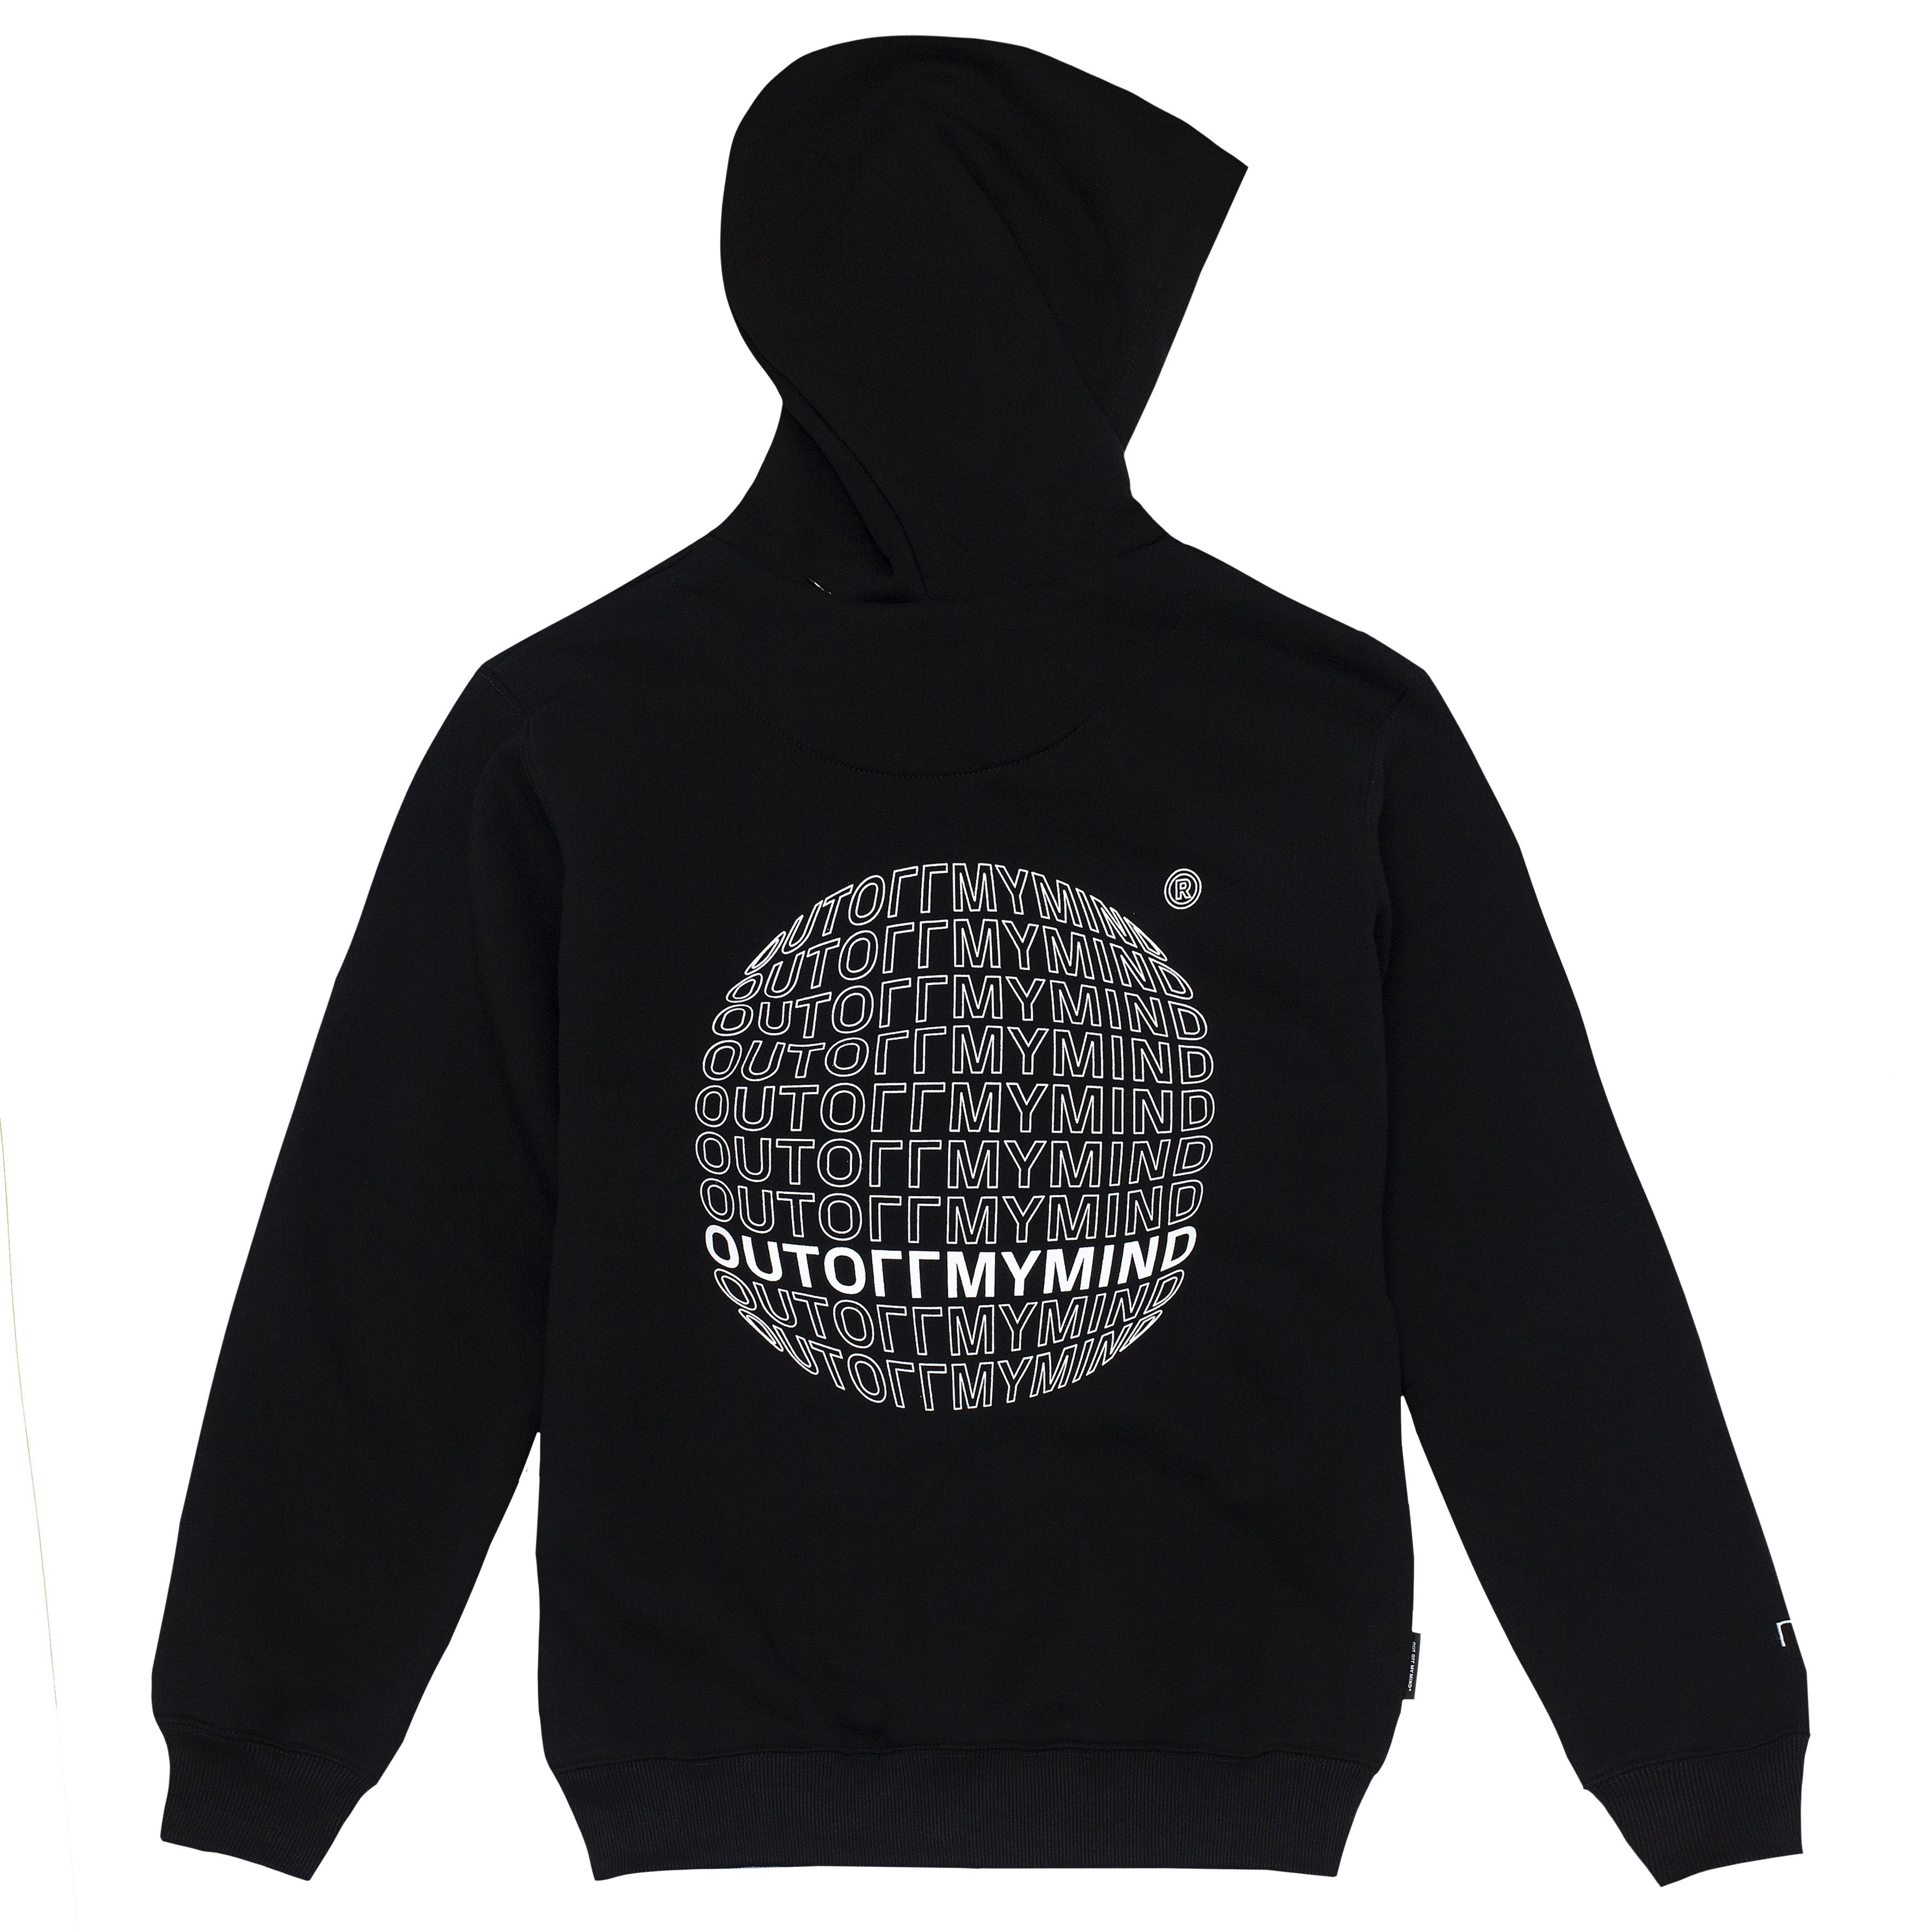 GLOBE ZIPPED HOODIE BLACK - outoffmymind